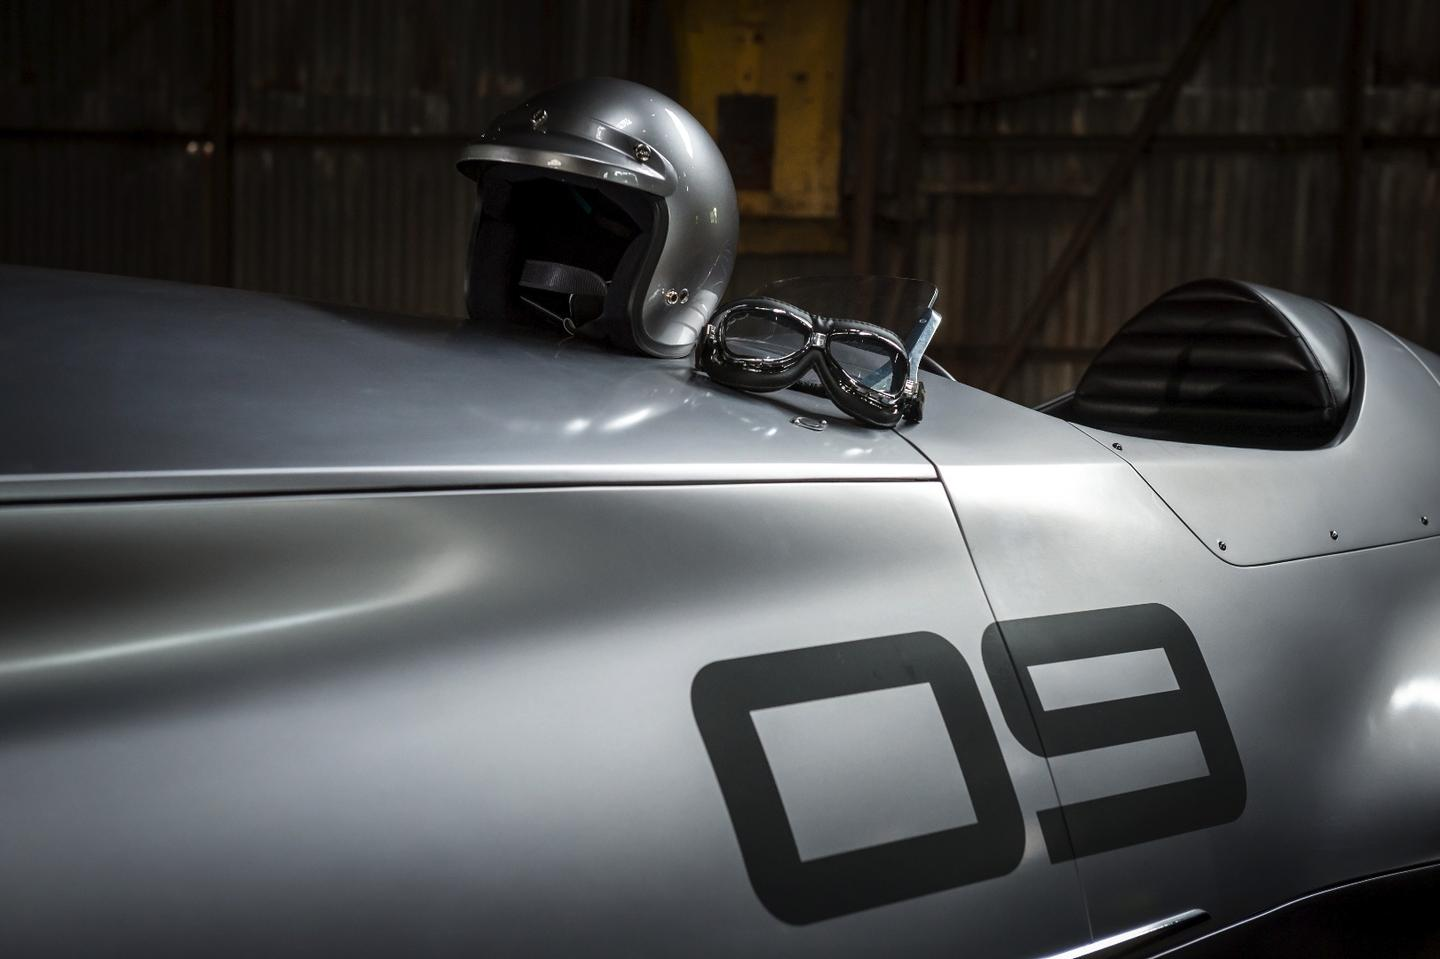 Infiniti has transformed a classic race car with modern design work and electric technology